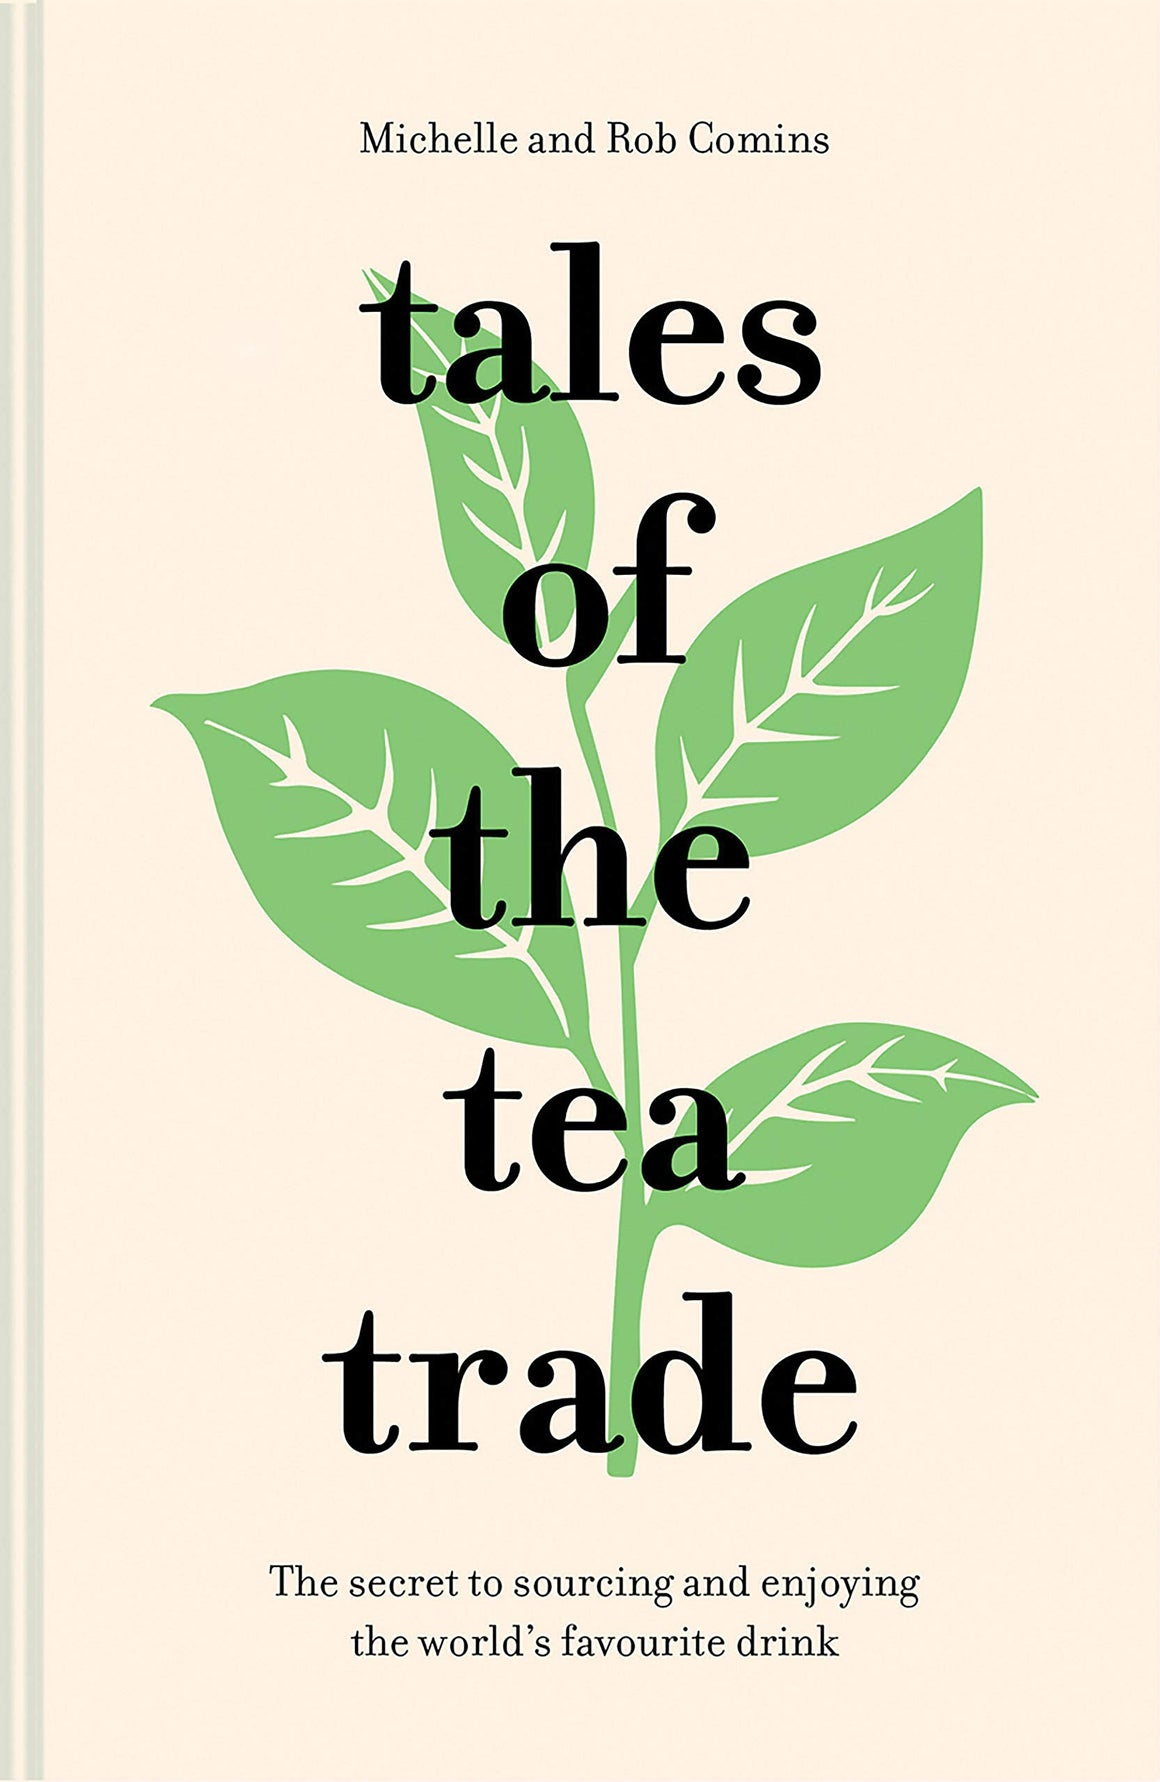 Michelle Comins and Rob Comins. Tales of the Tea Trade: The Secret to Sourcing and Enjoying the World's Favorite Drink